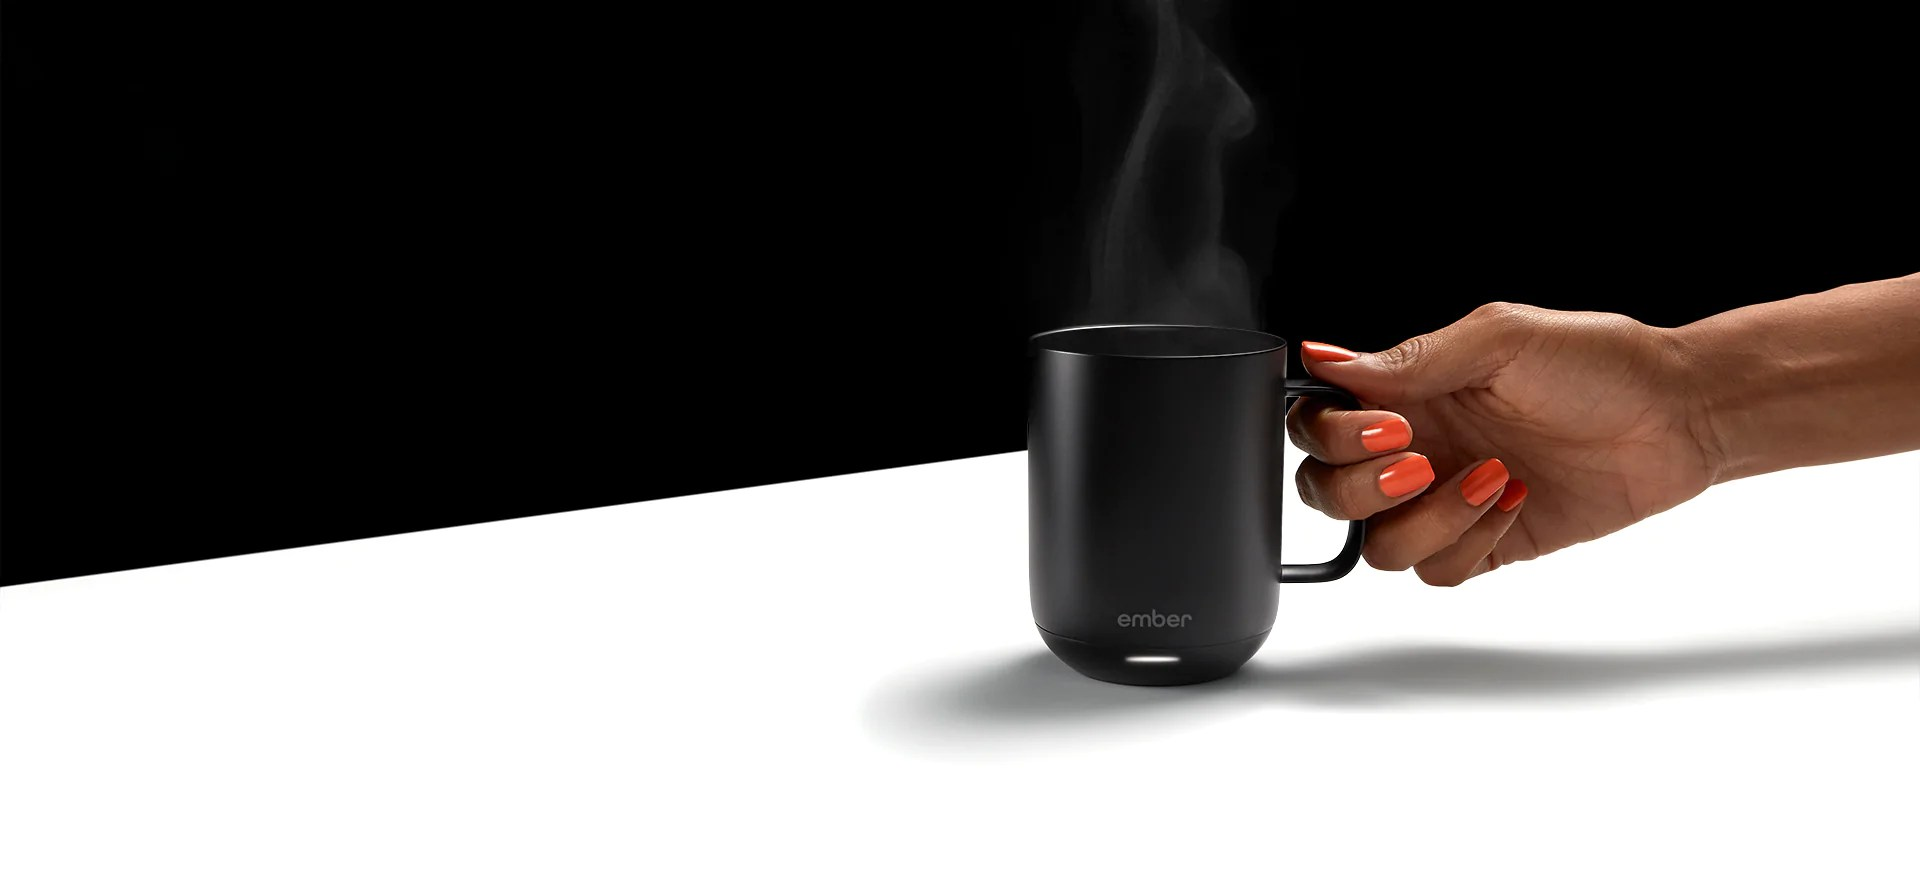 Cheery Ember Black Ceramic Mug Hero 21507efa 23d0 4b9b 8731 D406d4c79437 2048x Where Can I Get Mugs Made Get Coffee Mugs Made furniture Get Mugs Made